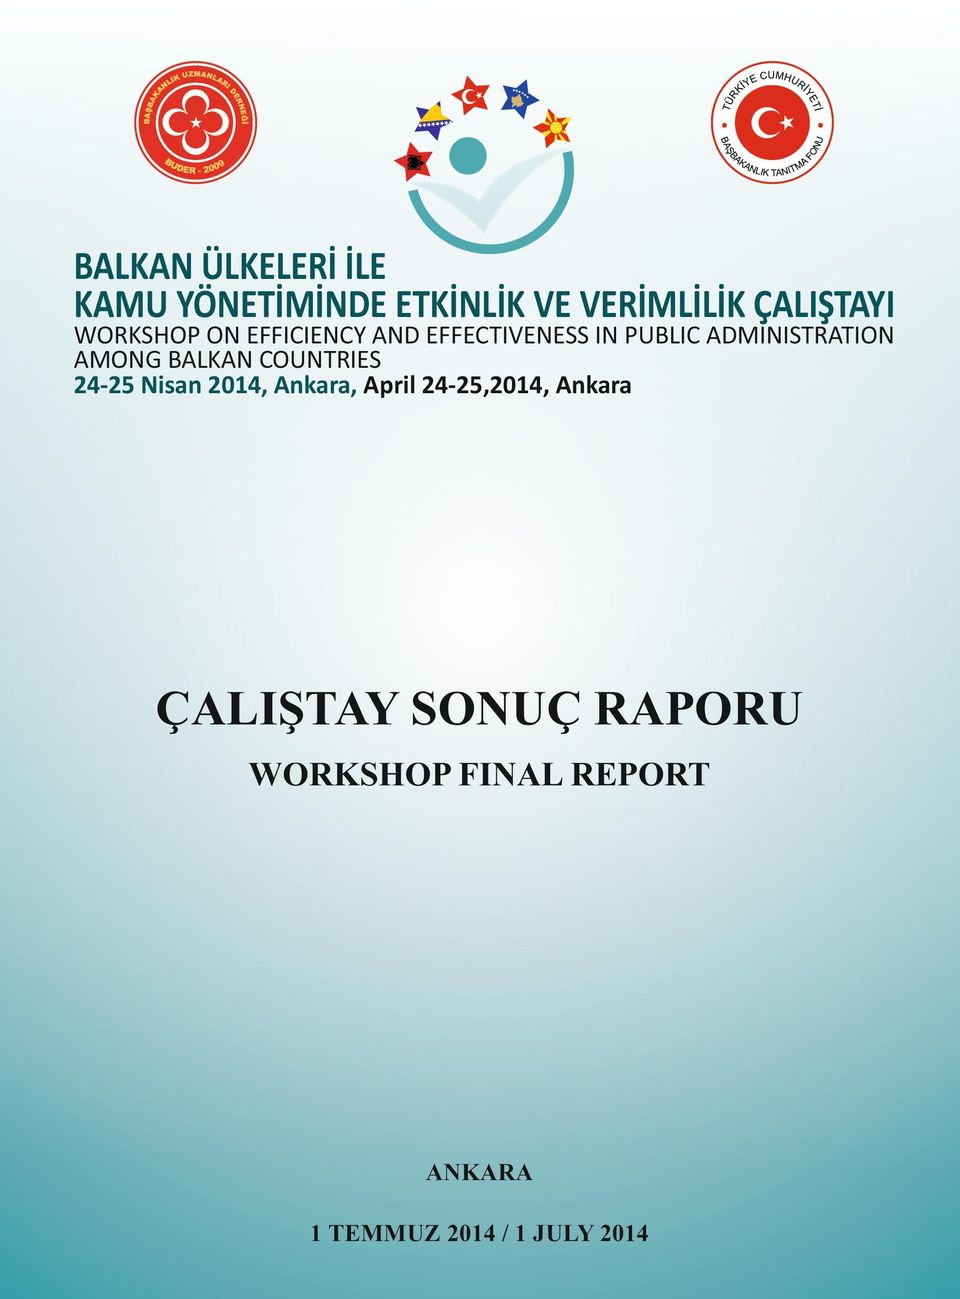 BALKAN COUNTRIES 24-25 Nisan 2014, Ankara, April 24-25,2014, Ankara